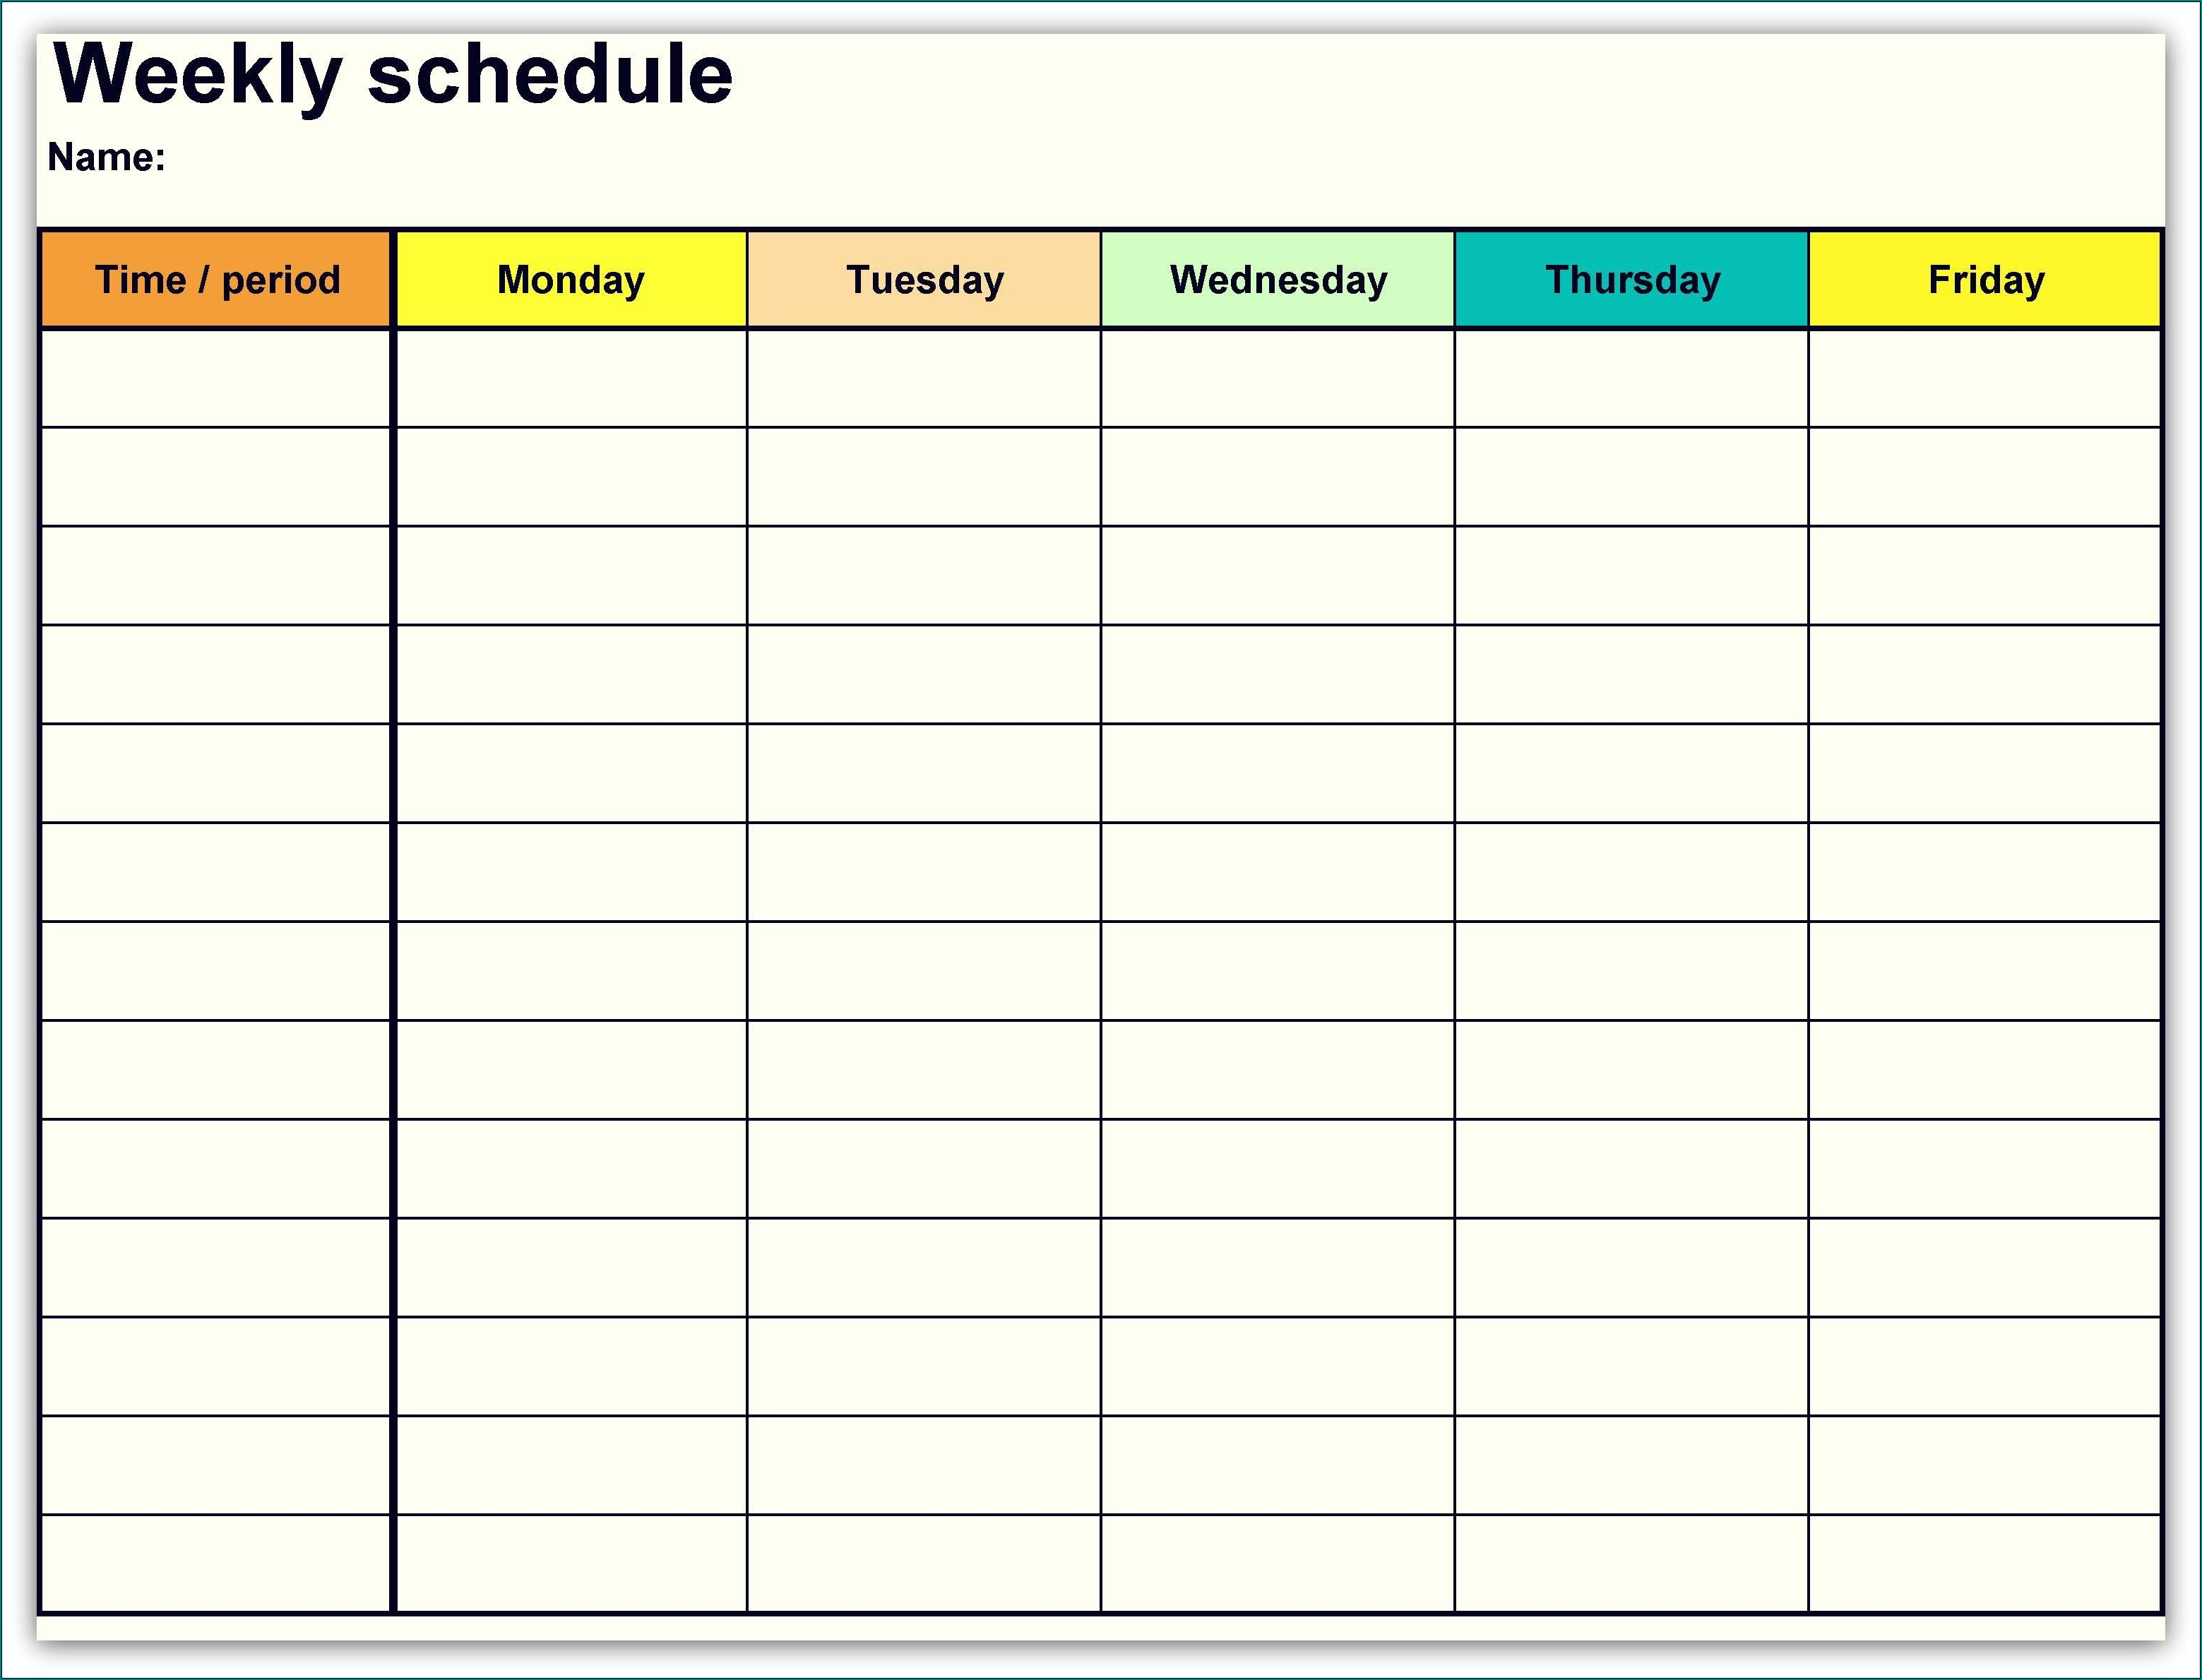 Example of Weekly Schedule Template